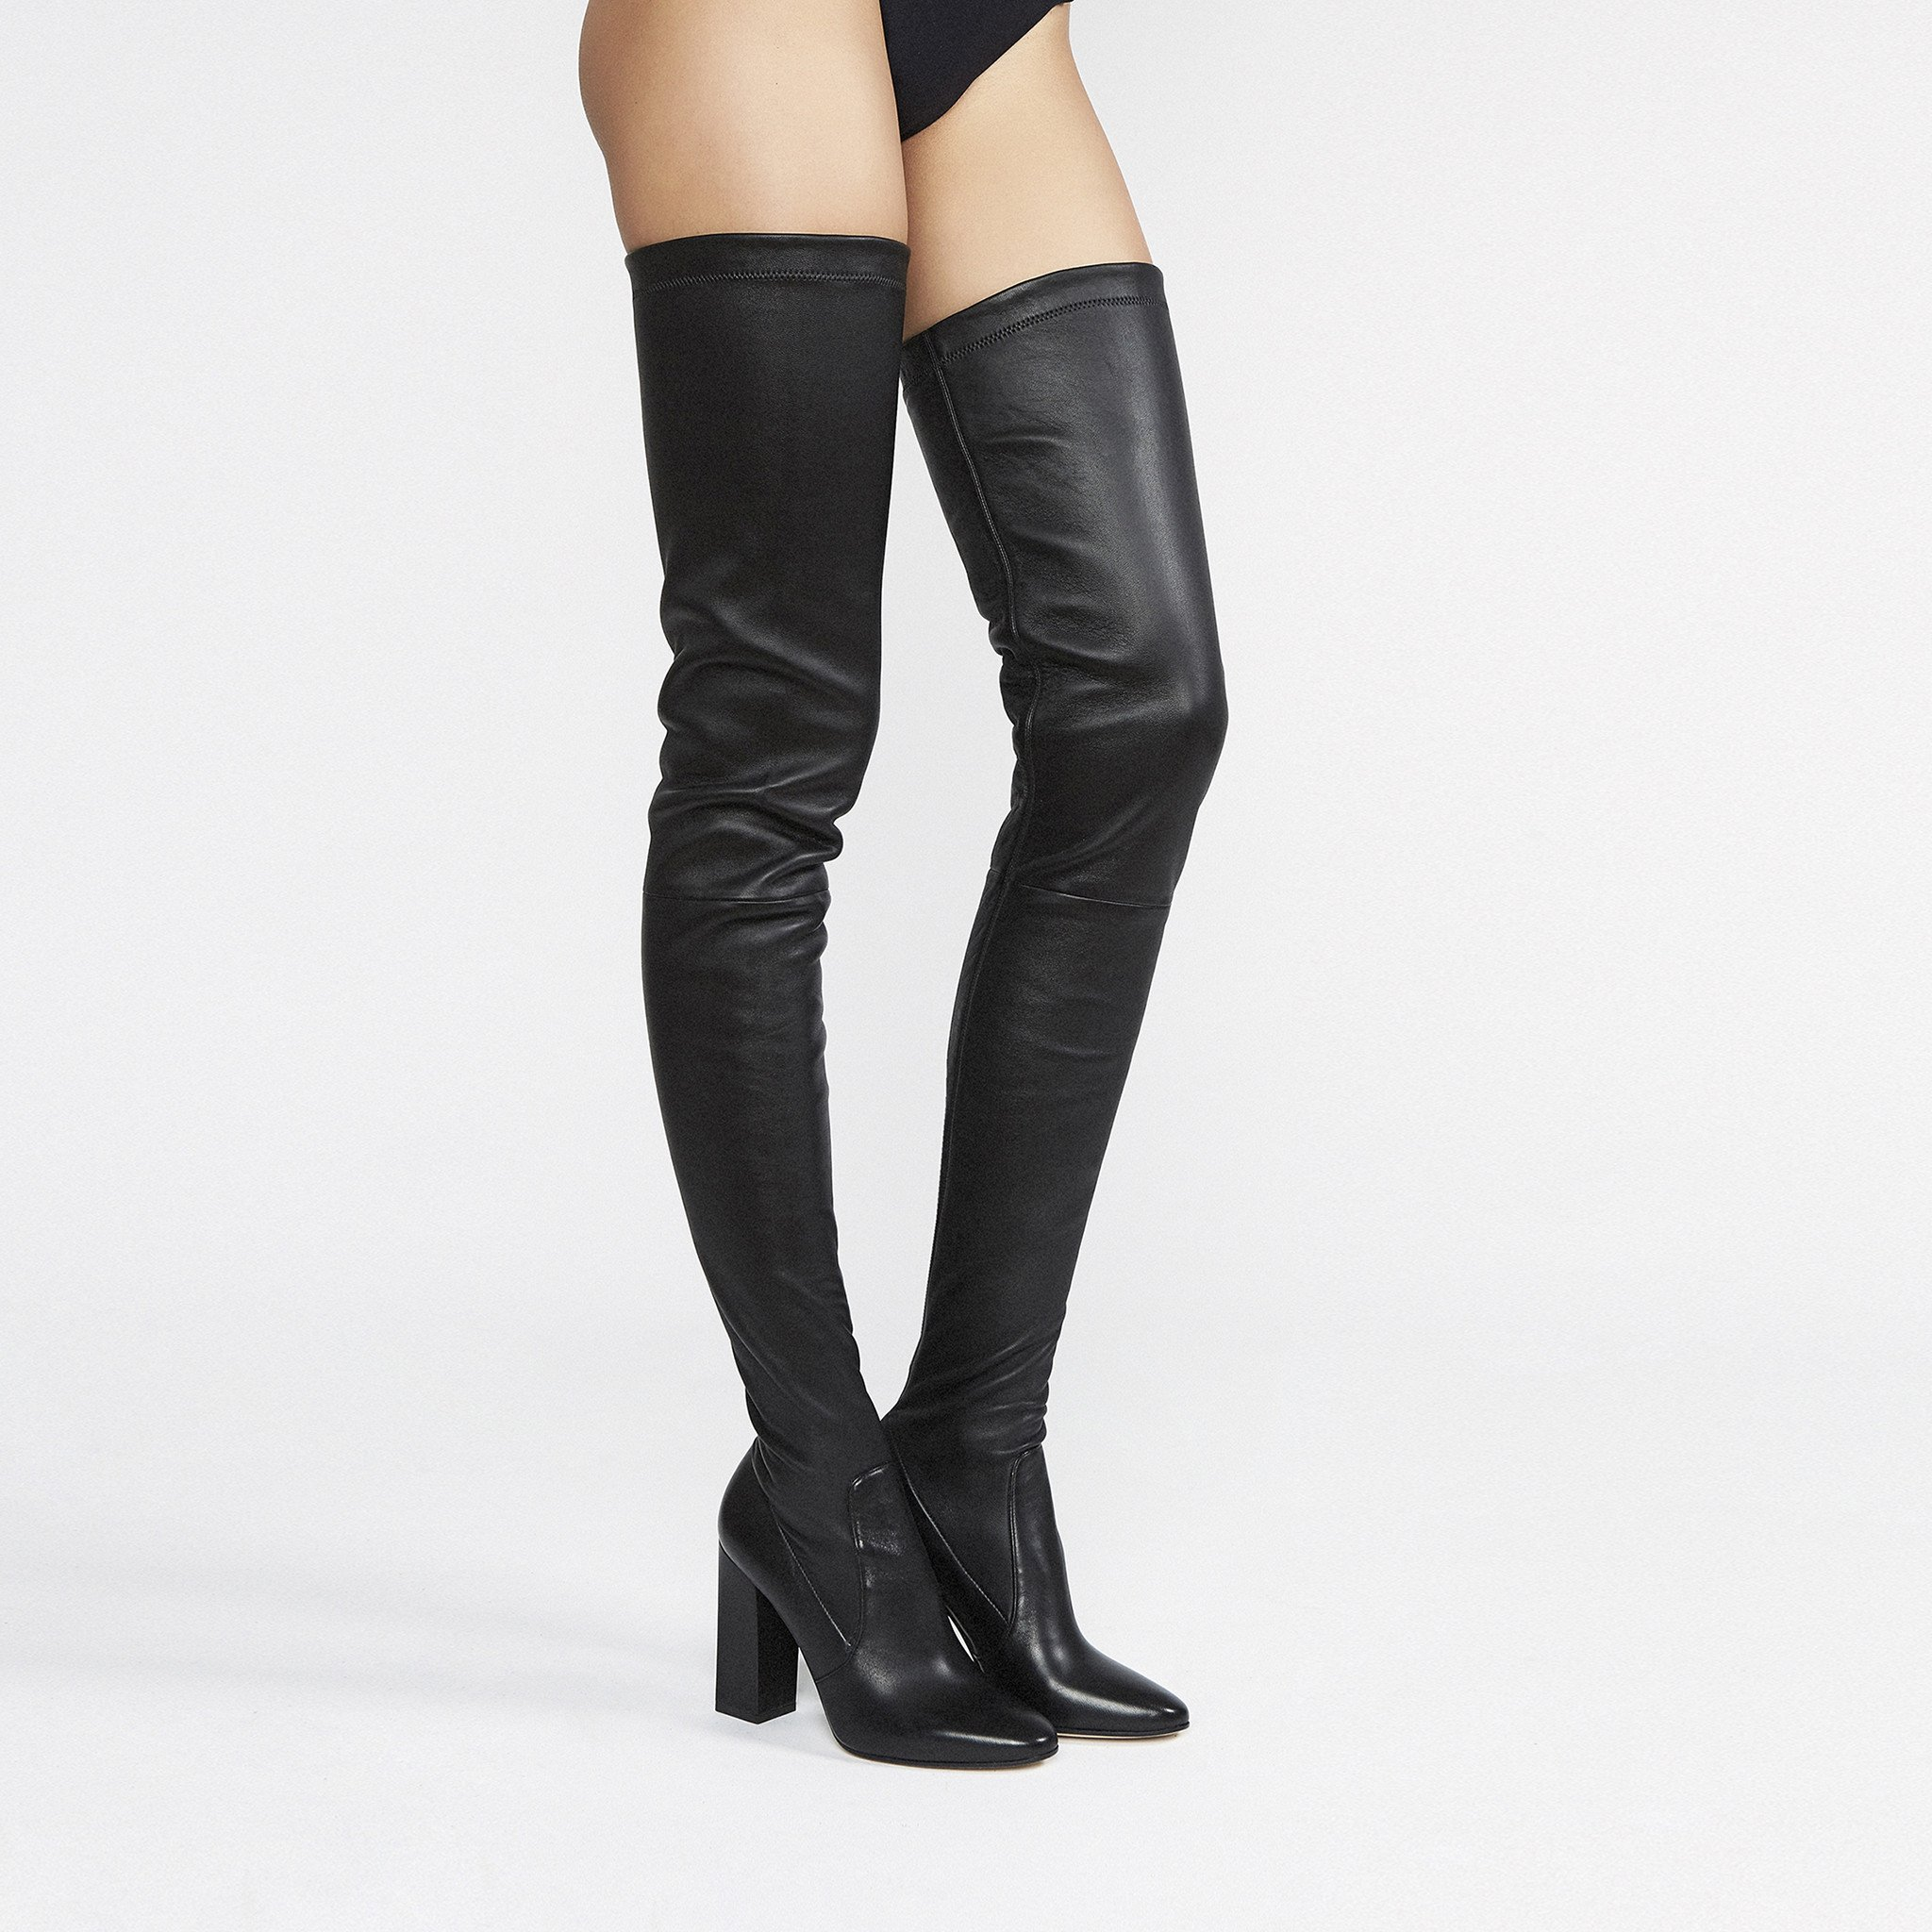 Tamara Mellon Helmut thigh high stretch nappa leather boots